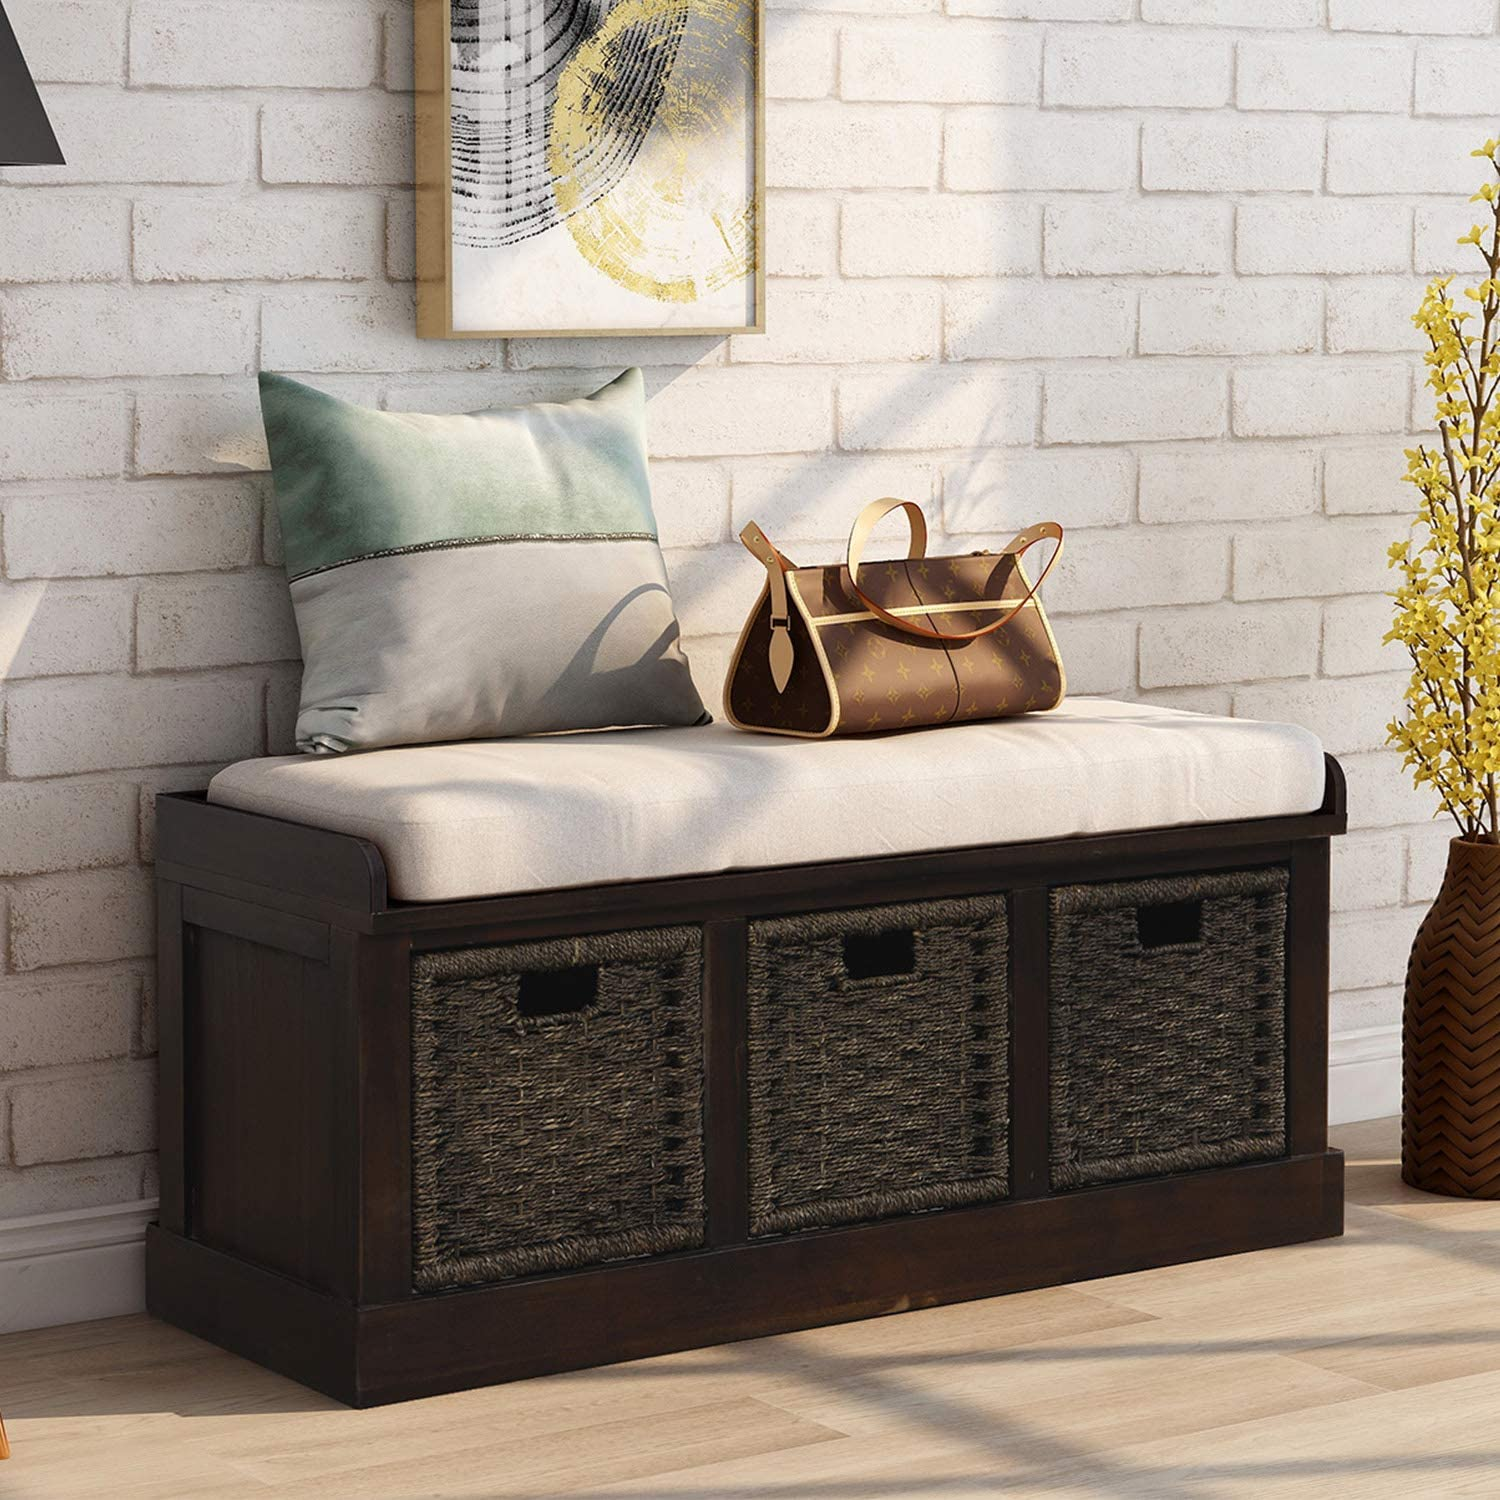 Amazon Com Storage Bench With 3 Basket Drawers Rustic Entryway Bench Shoe Bench With Cushioned Seat For Entryway Hallway Mudroom Living Room Espresso Kitchen Dining